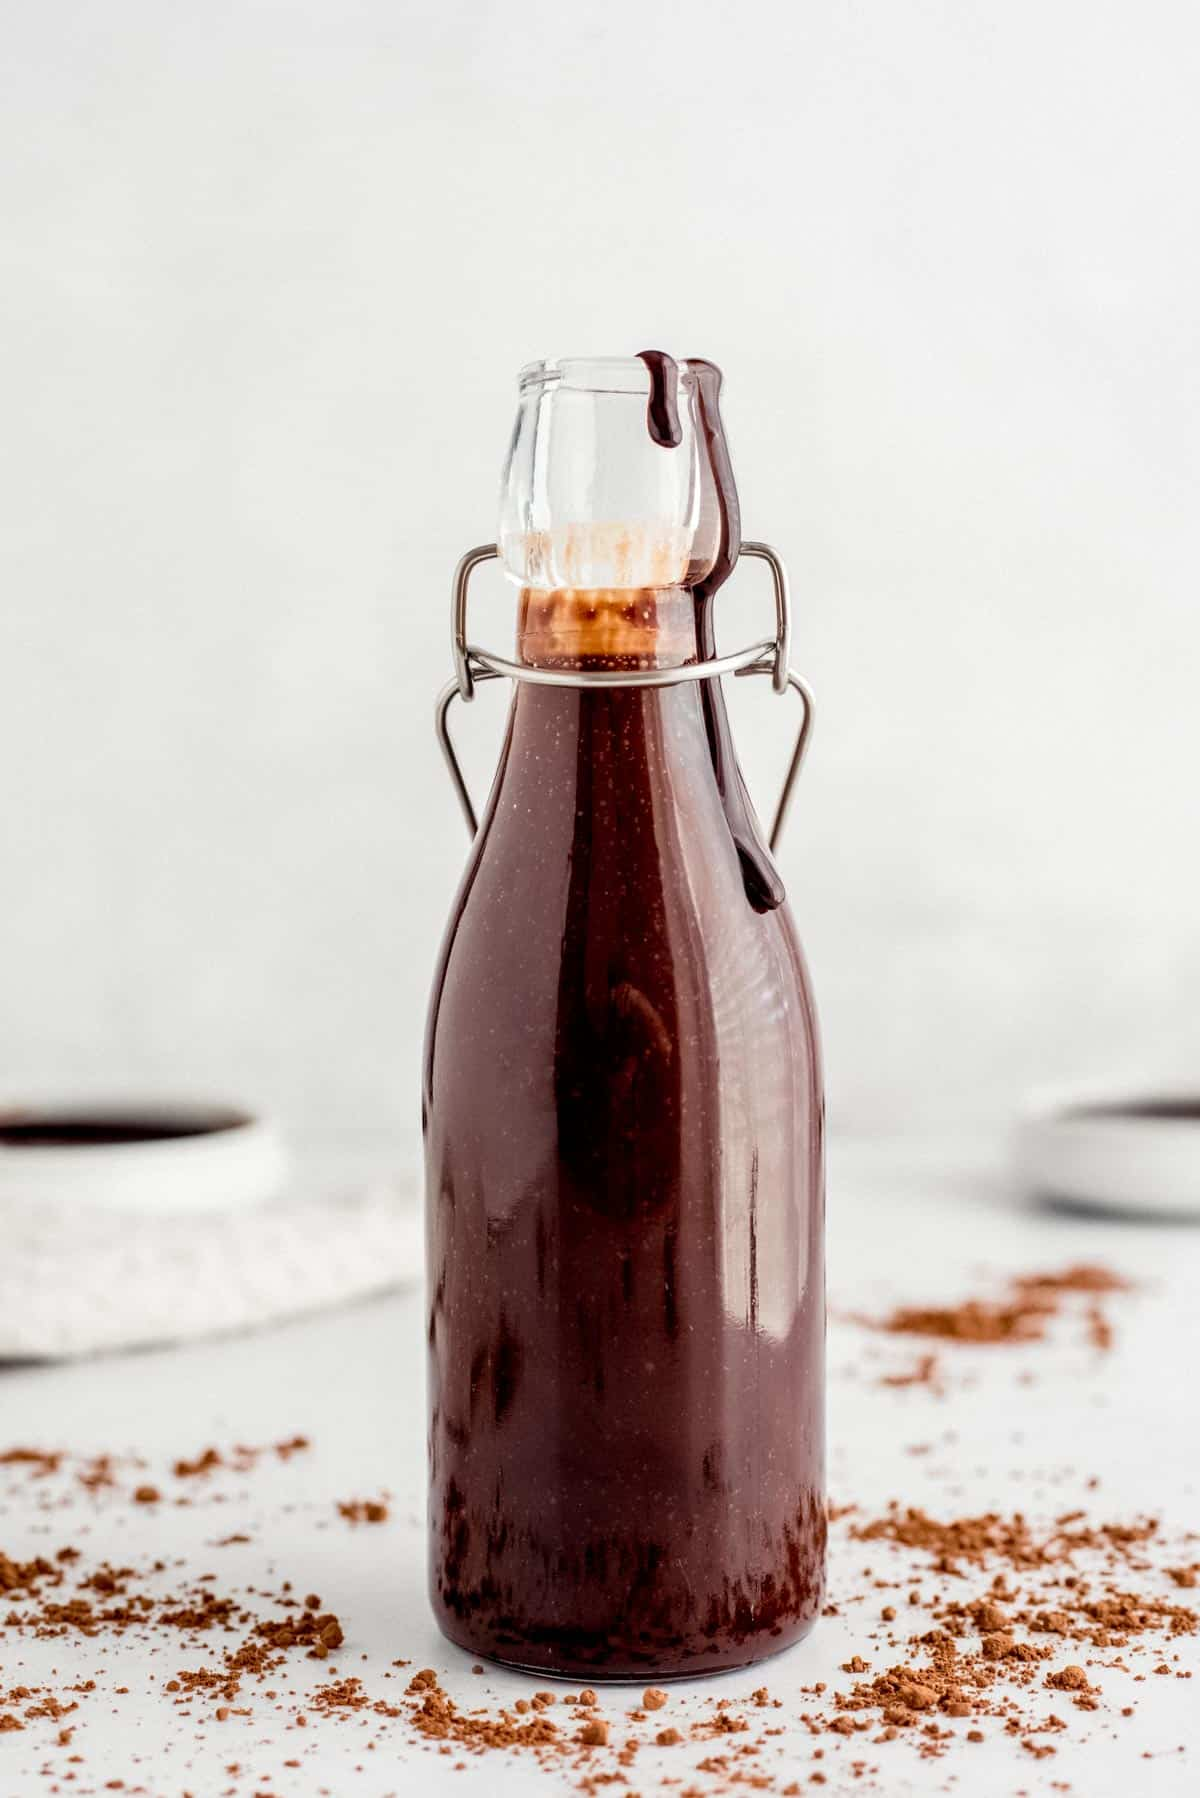 Homemade chocolate syrup in a clear glass bottle.